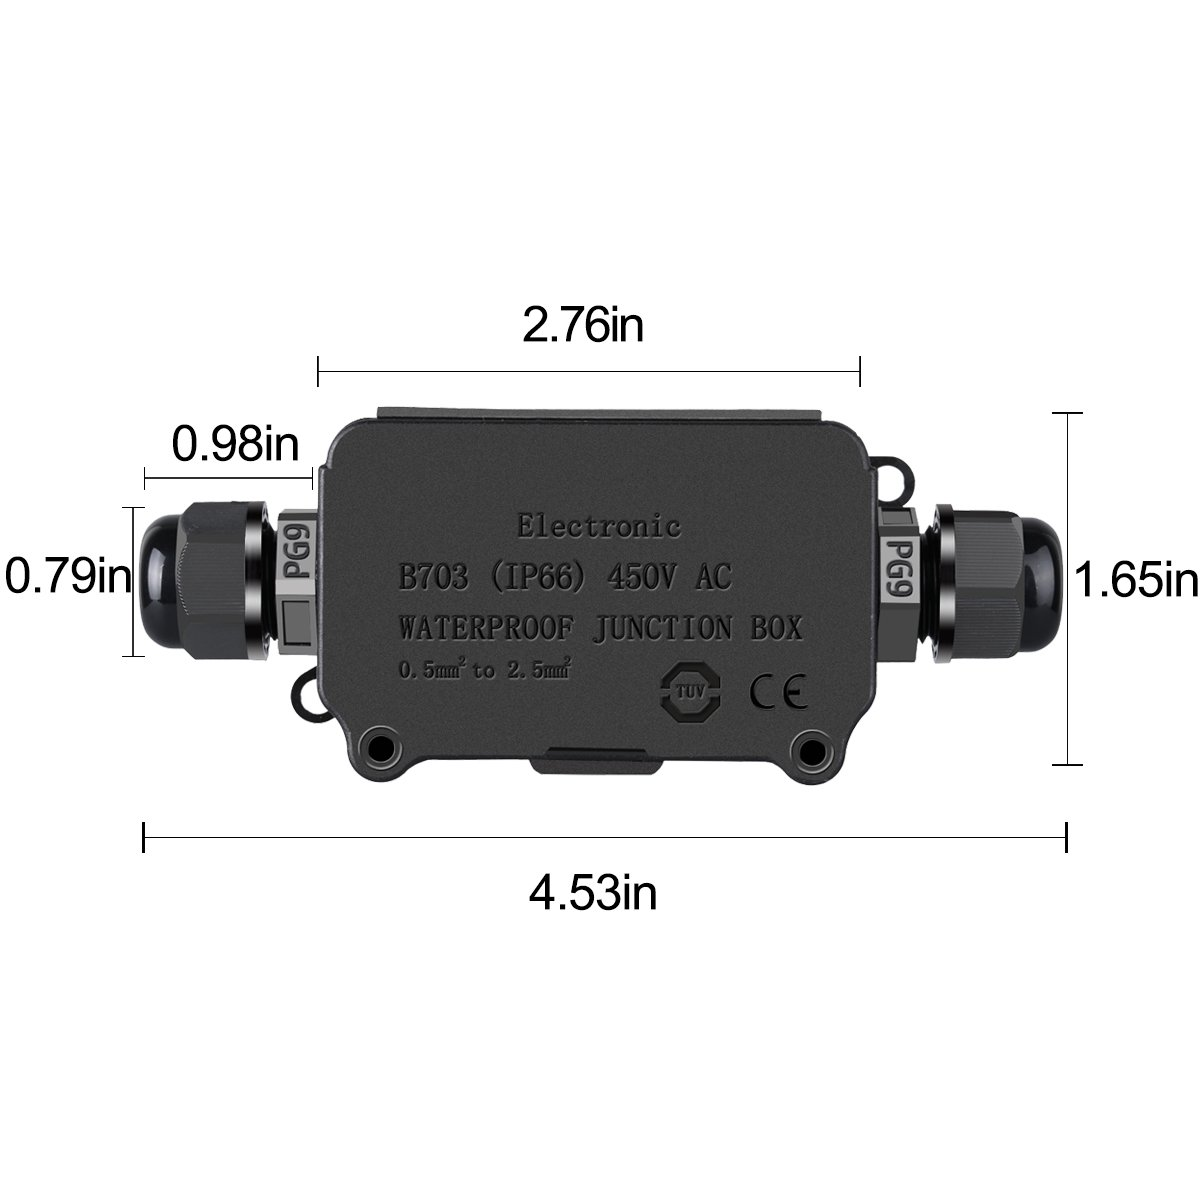 Coolwest Ip66 Junction Box Waterproof Outdoor 2 Cable Pg9 Black Stove Wiring Plastic Connector Gland Electrical